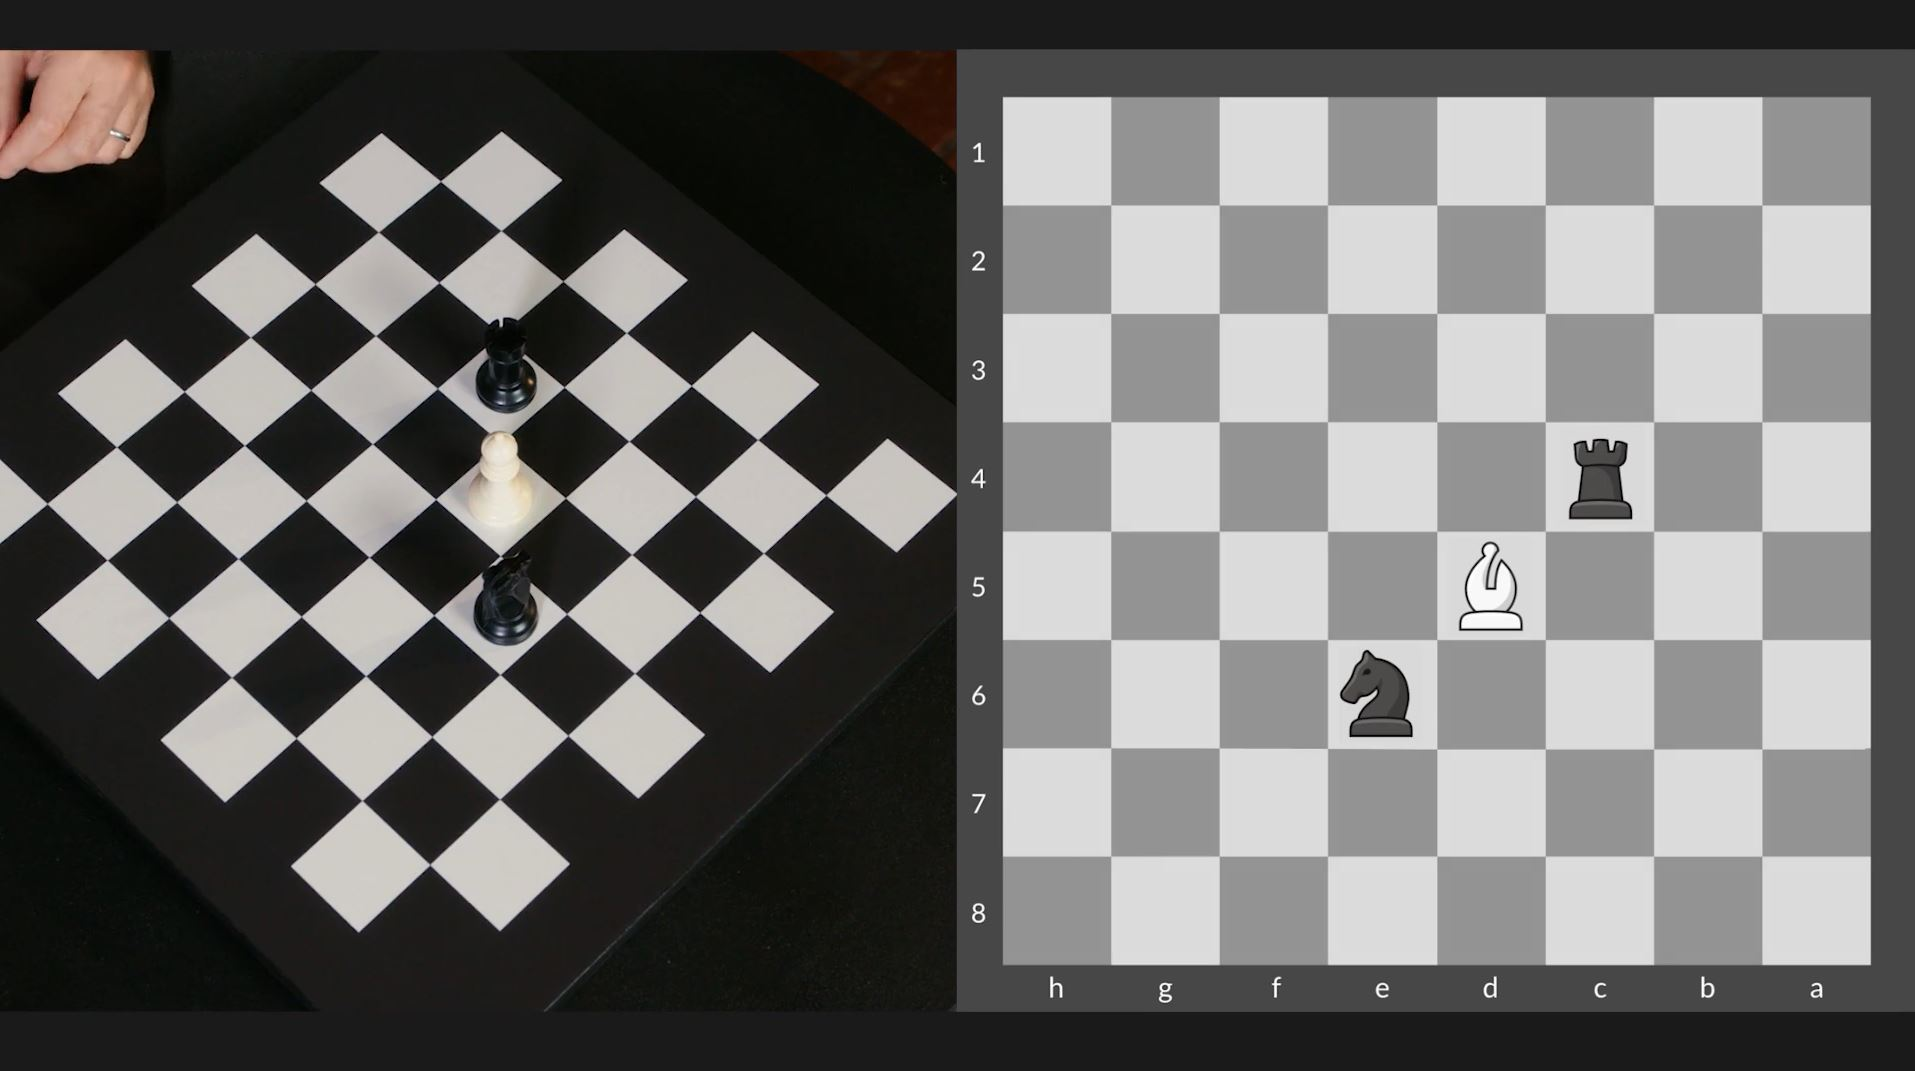 image of a physical chess board and digital chess board